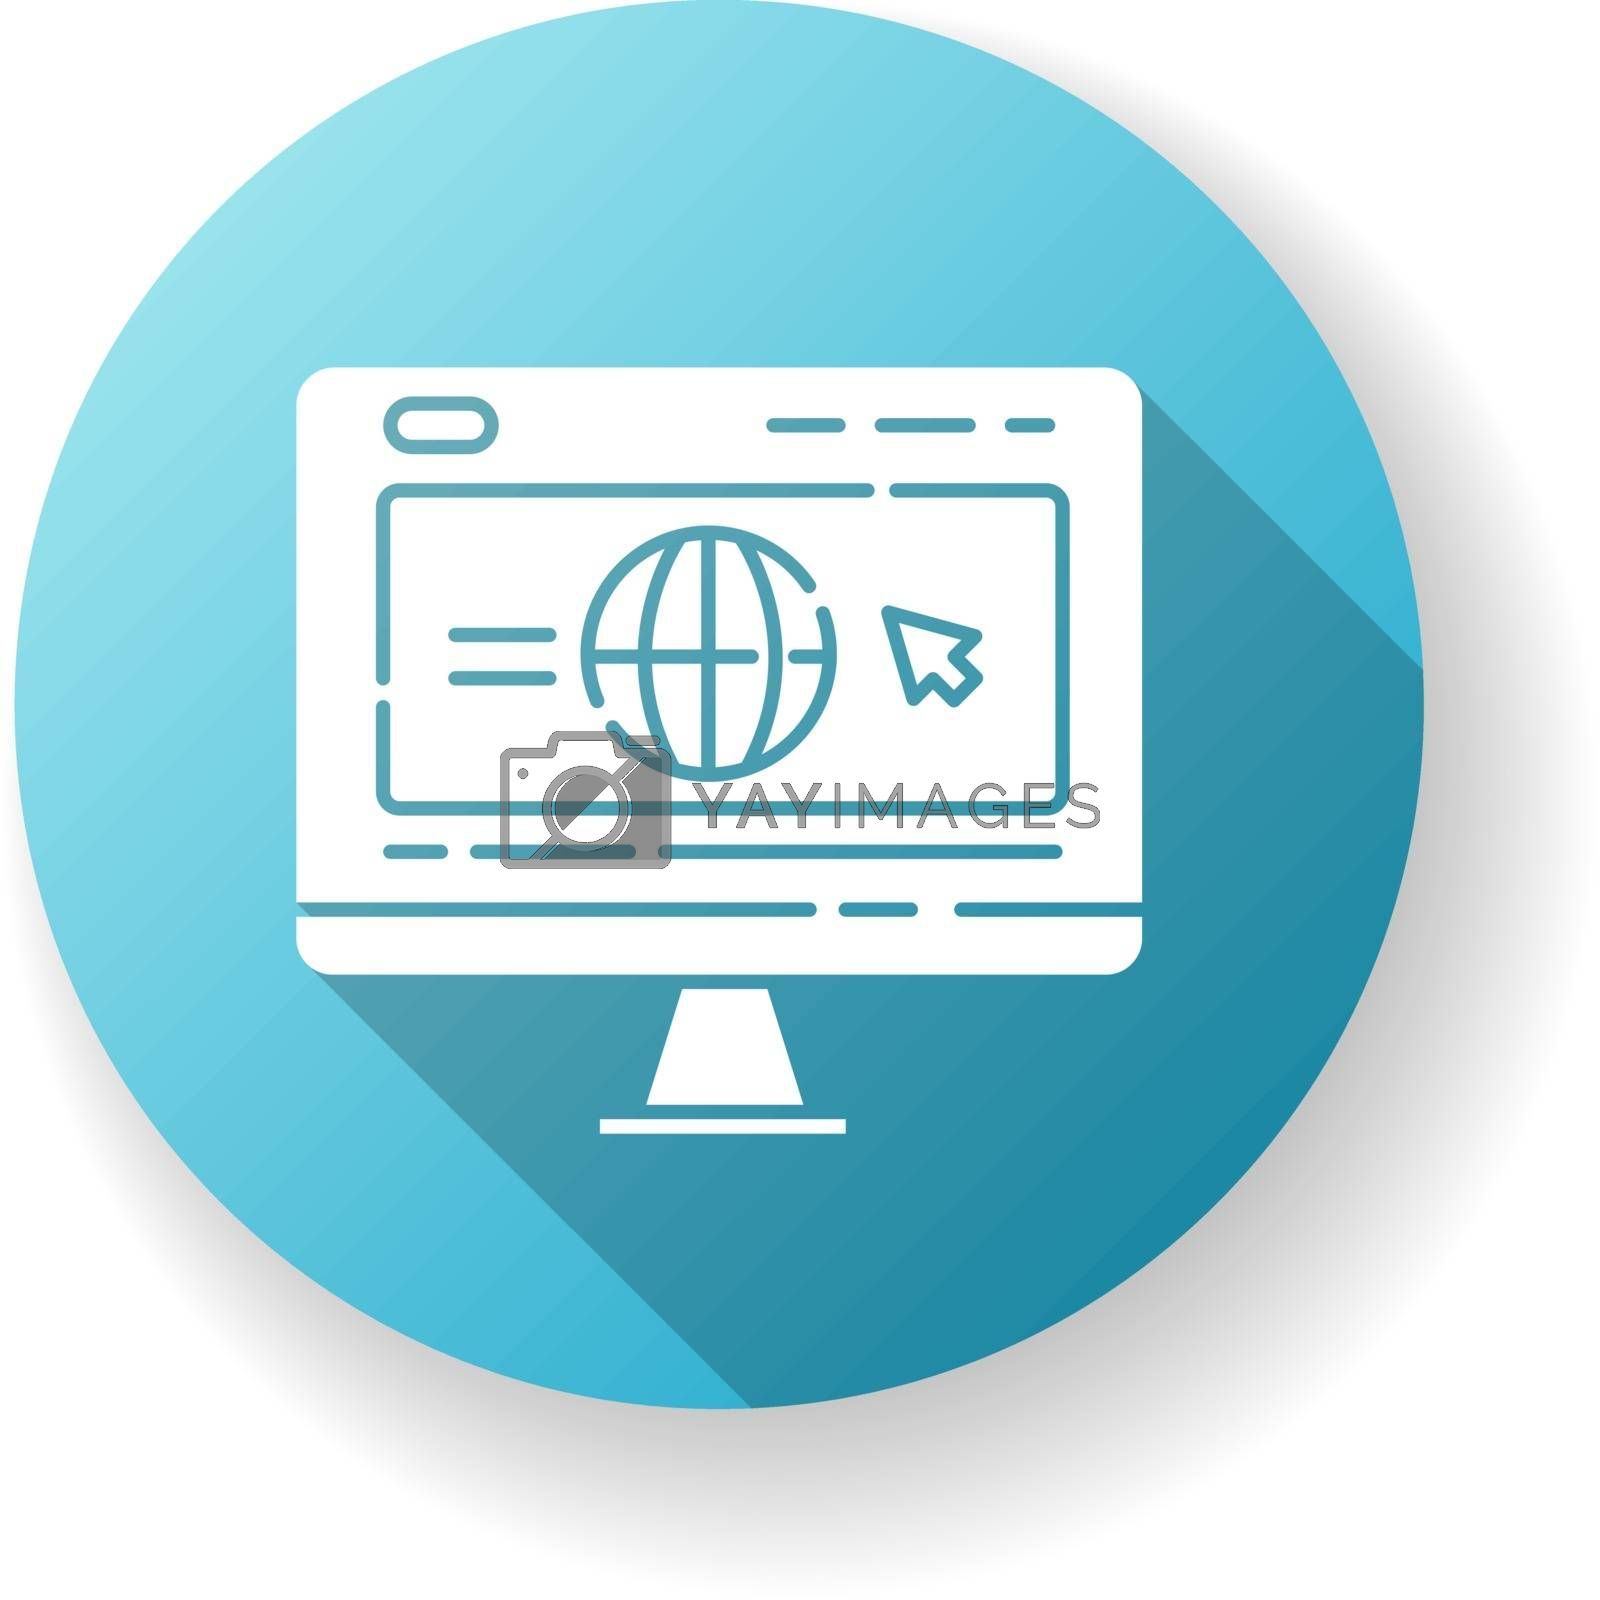 Corporate website blue flat design long shadow glyph icon. Browse company webpage. Social media strategy. Bloggin and seo. Site optimization and promotion service. Silhouette RGB color illustration